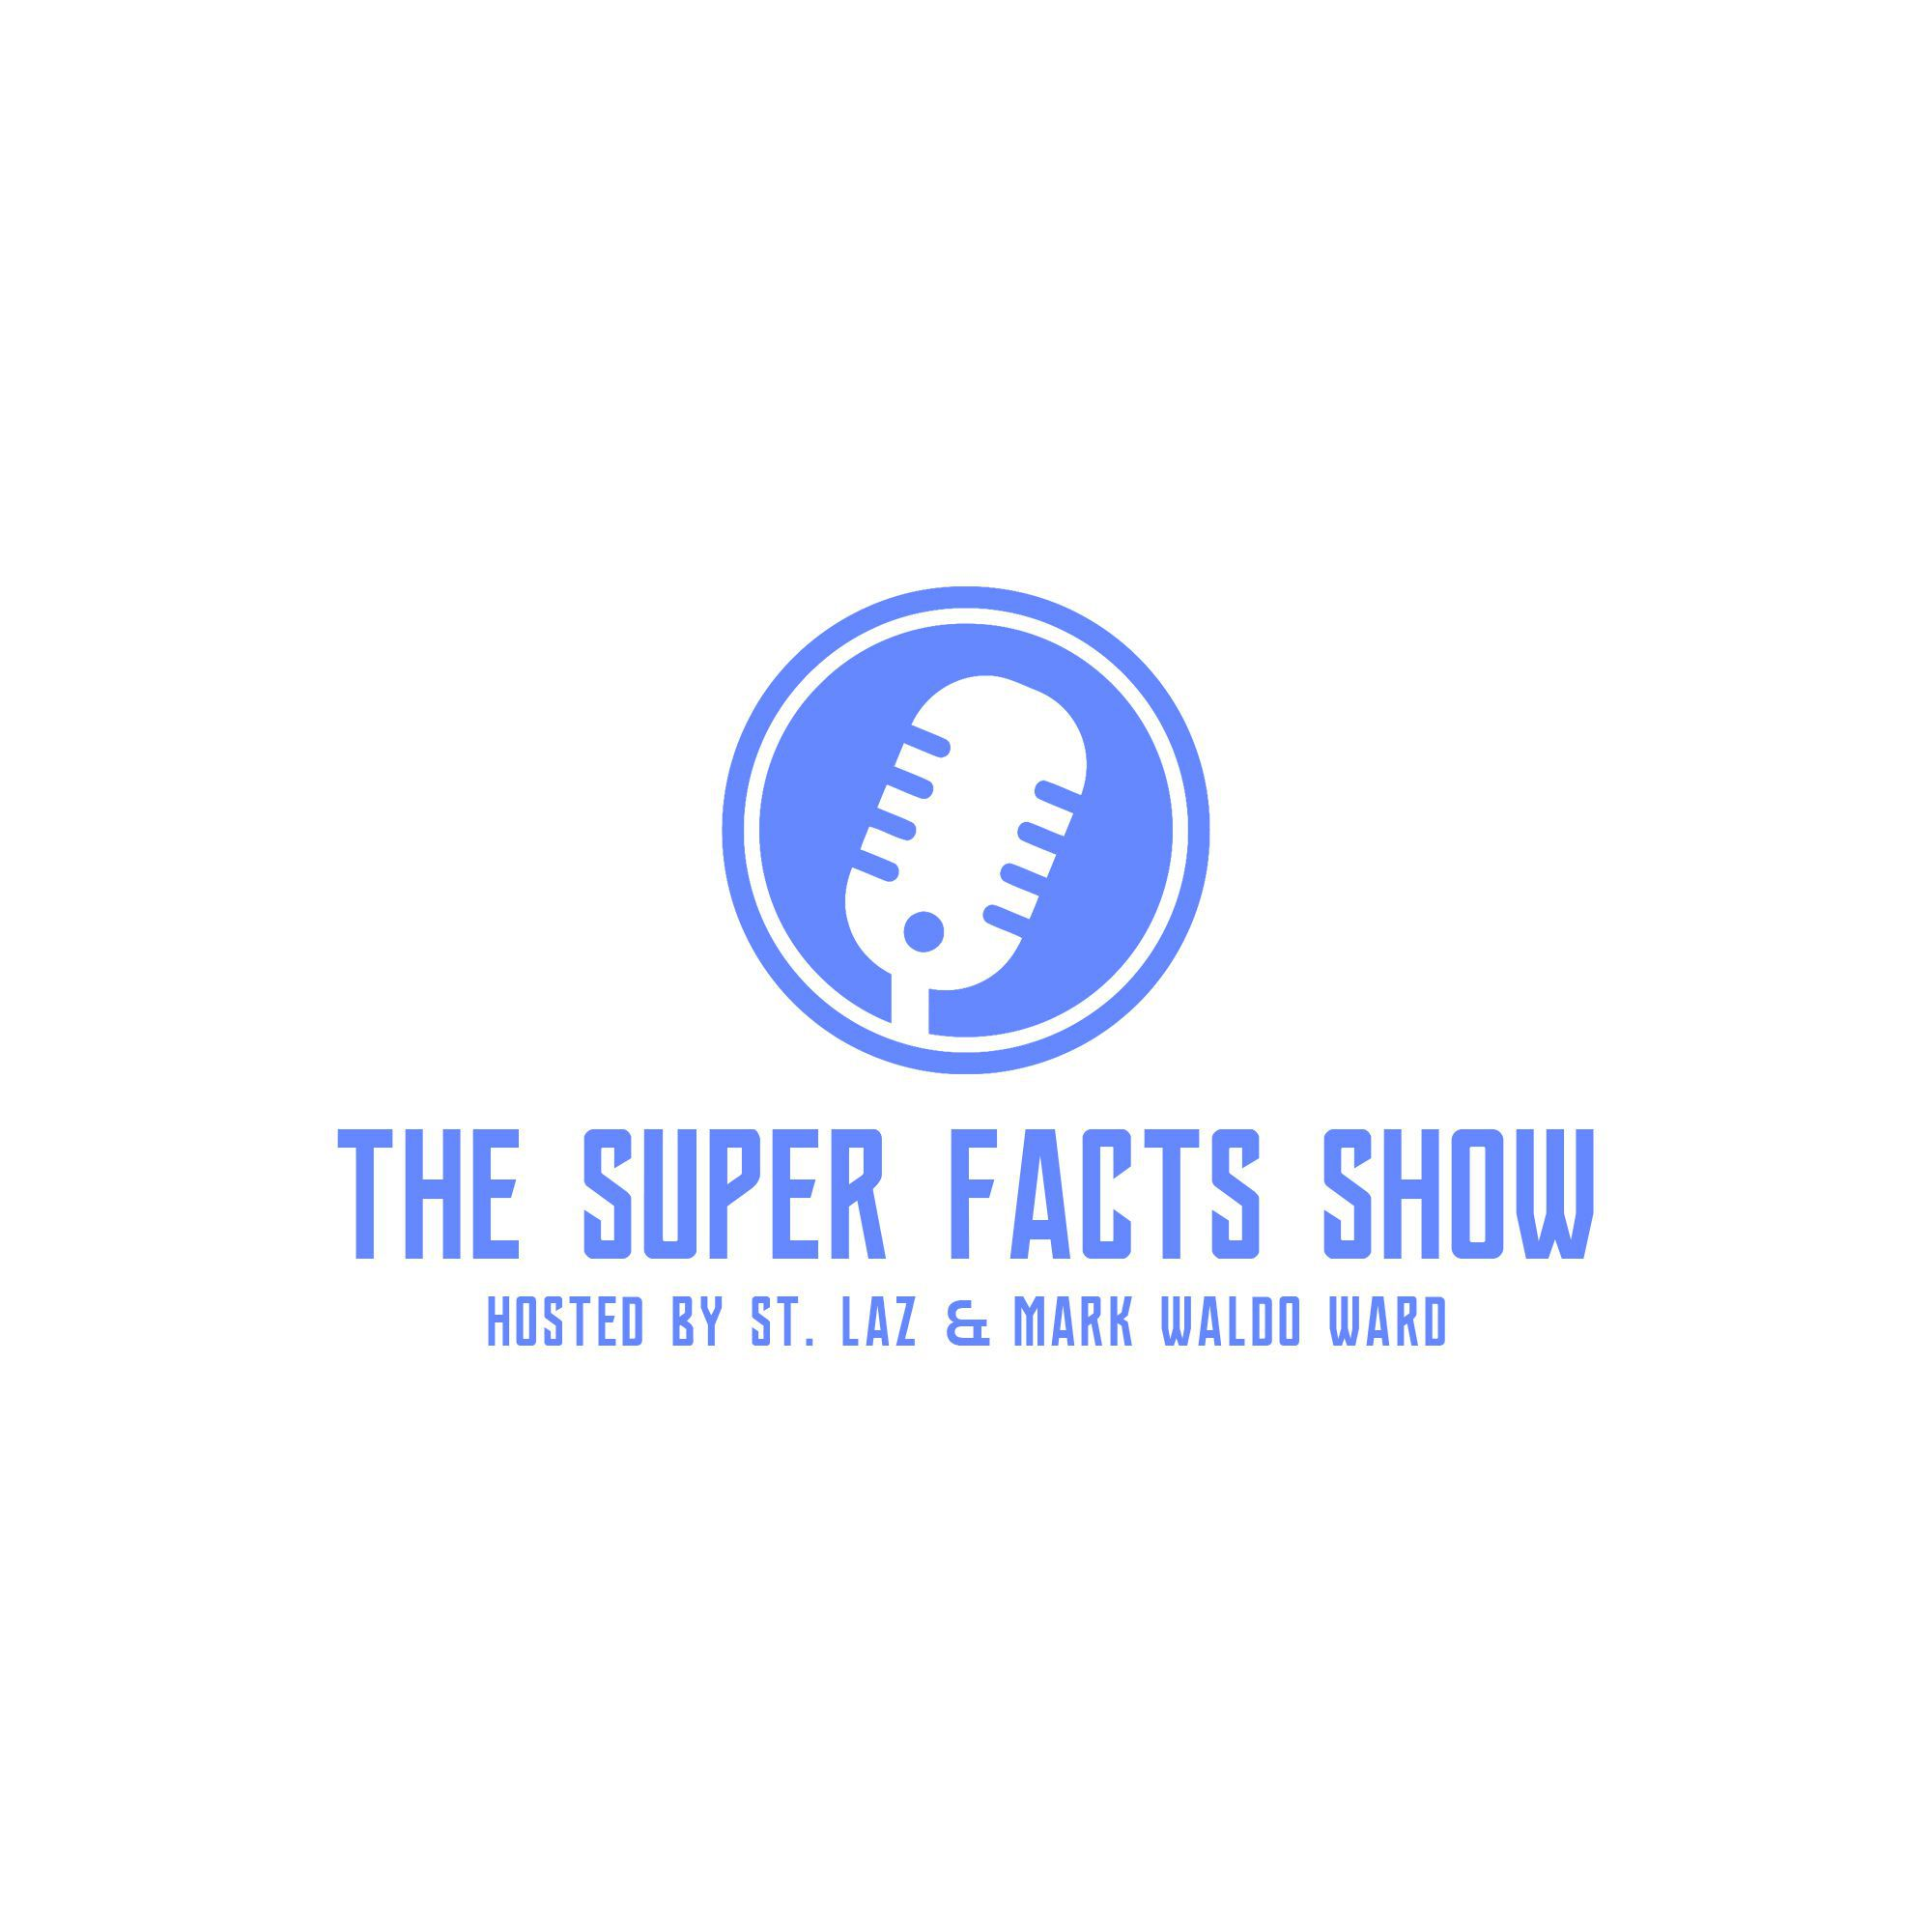 The Super Facts Show